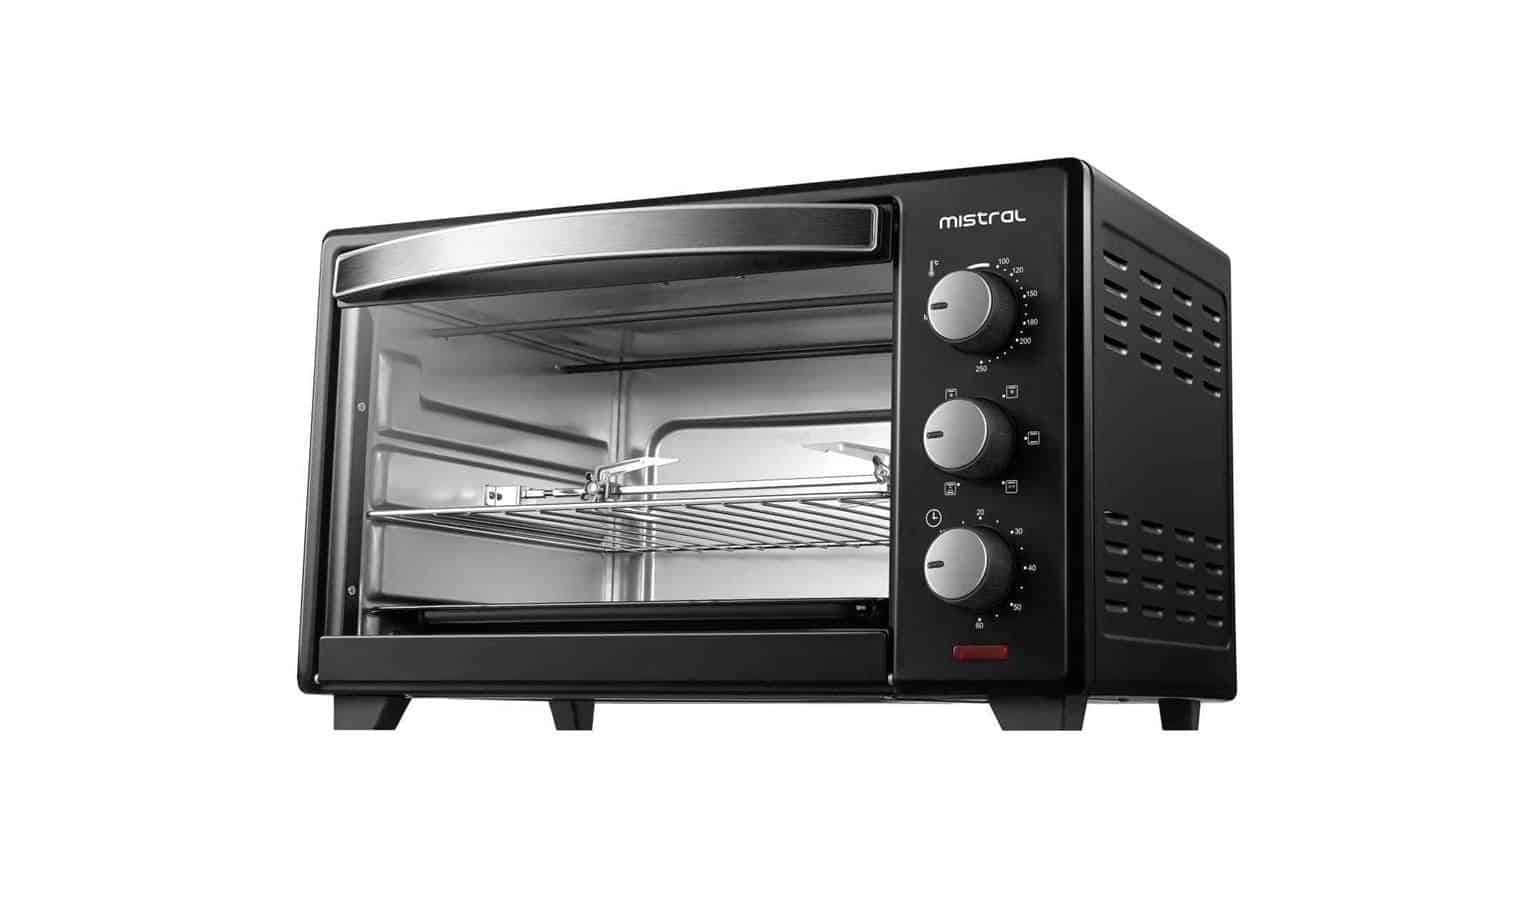 Mistral MO208 20L Electric Oven   Harvey Norman Singapore